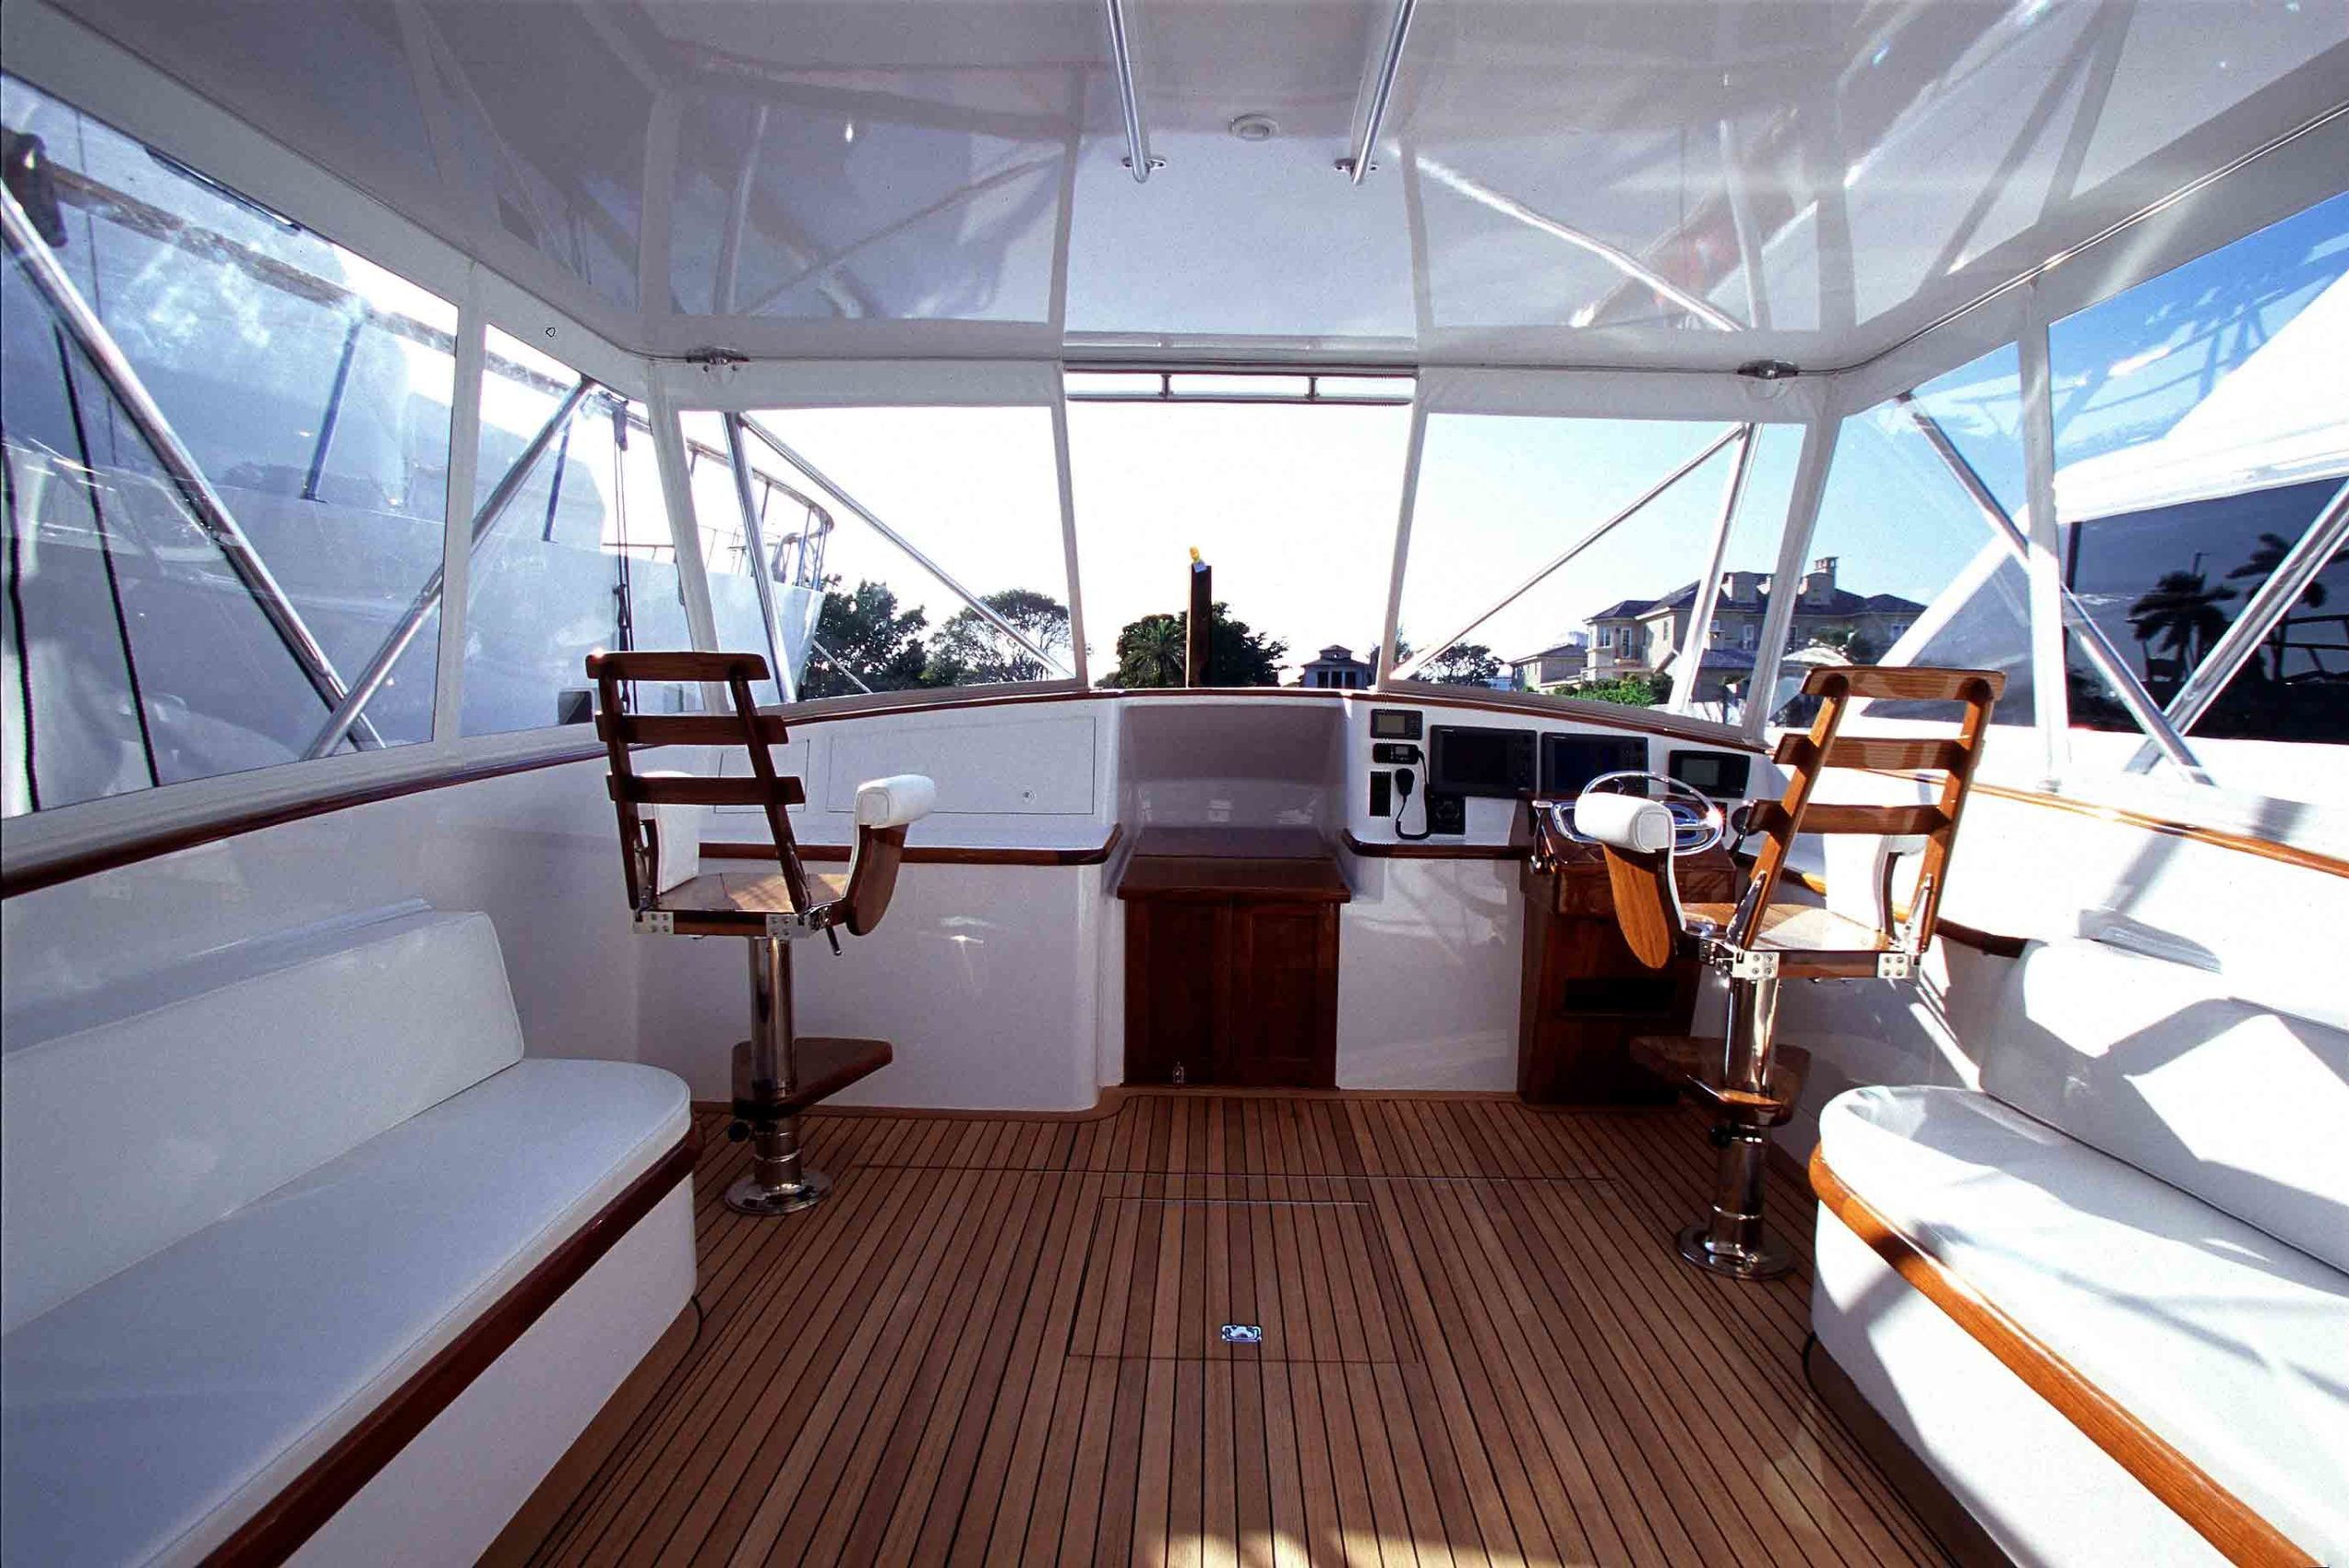 Clean and new boat windows from Rainier Marine.